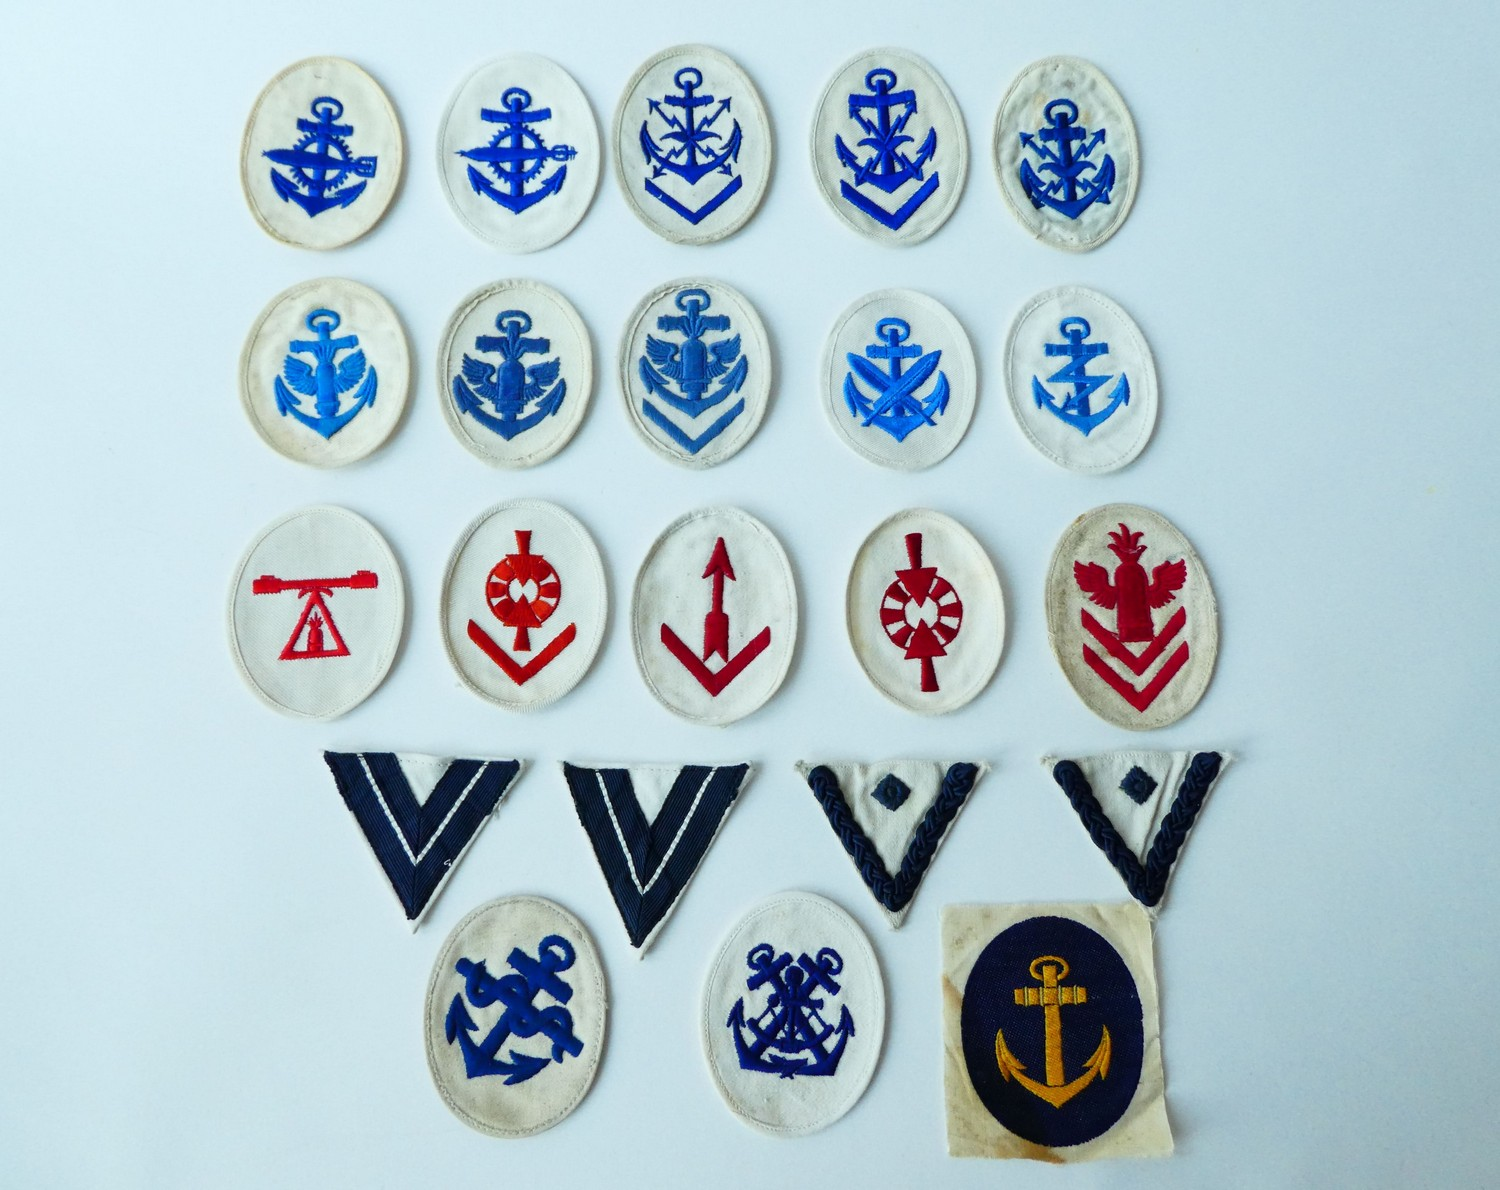 KRIEGSMARINE RANK AND CAREER INSIGNIA FOR PETTY OFFICERS